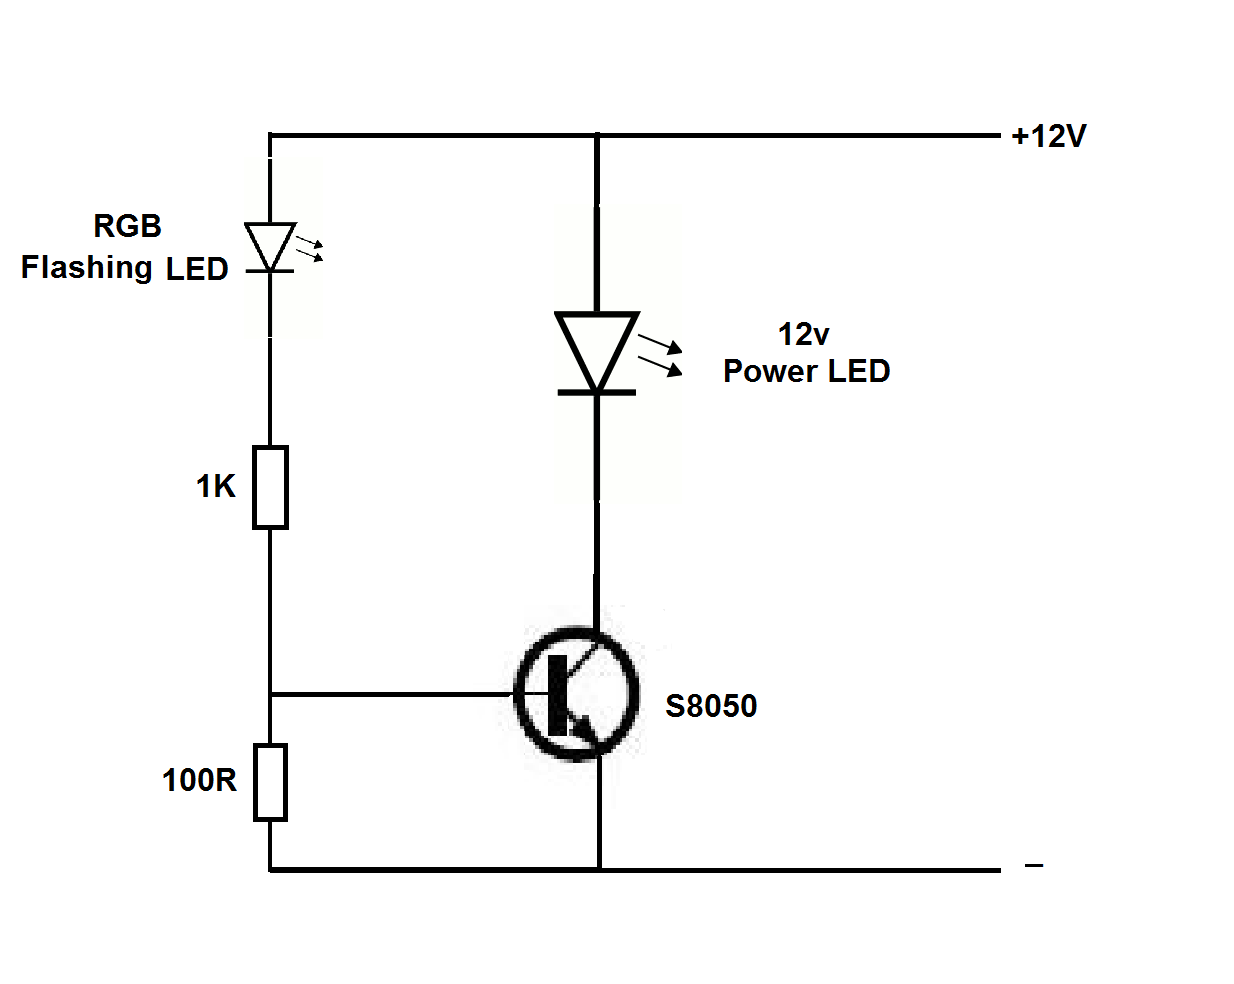 flasher 2busing 2bflashing 2bled 12v power led flasher circuit using led flasher wiring diagram  [ 1234 x 984 Pixel ]